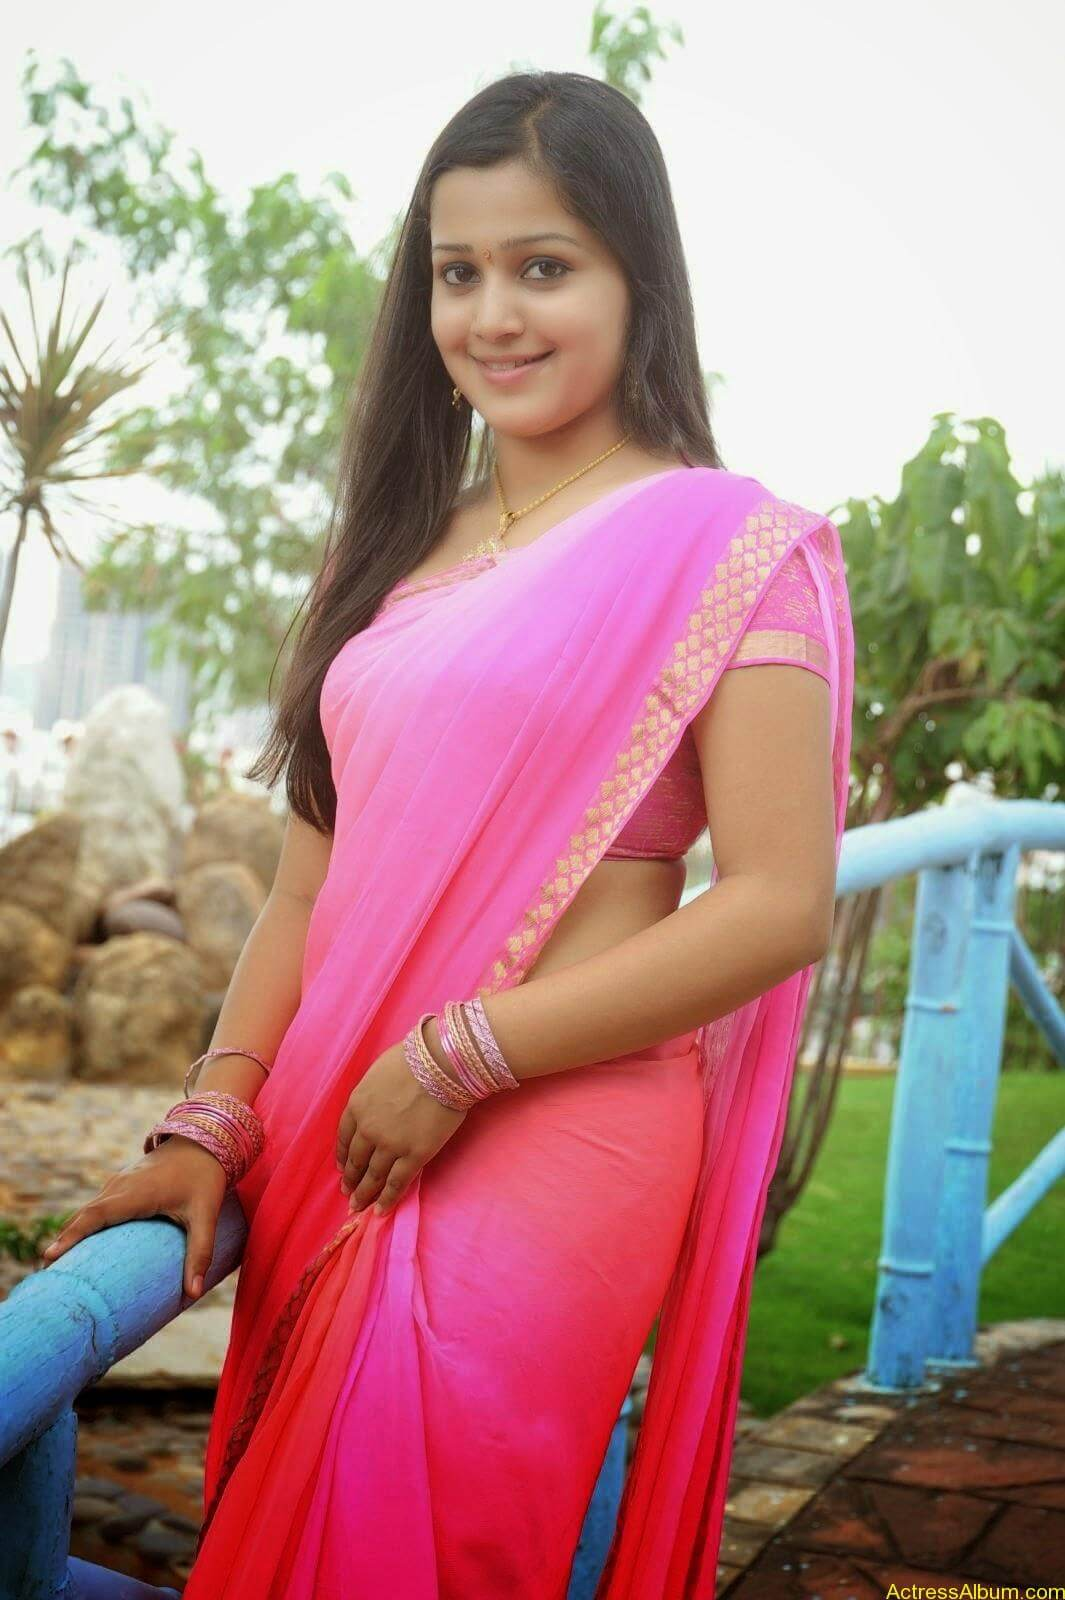 Samskruthy Shenoy In Pink Saree Hot Sexy Actress Photos1